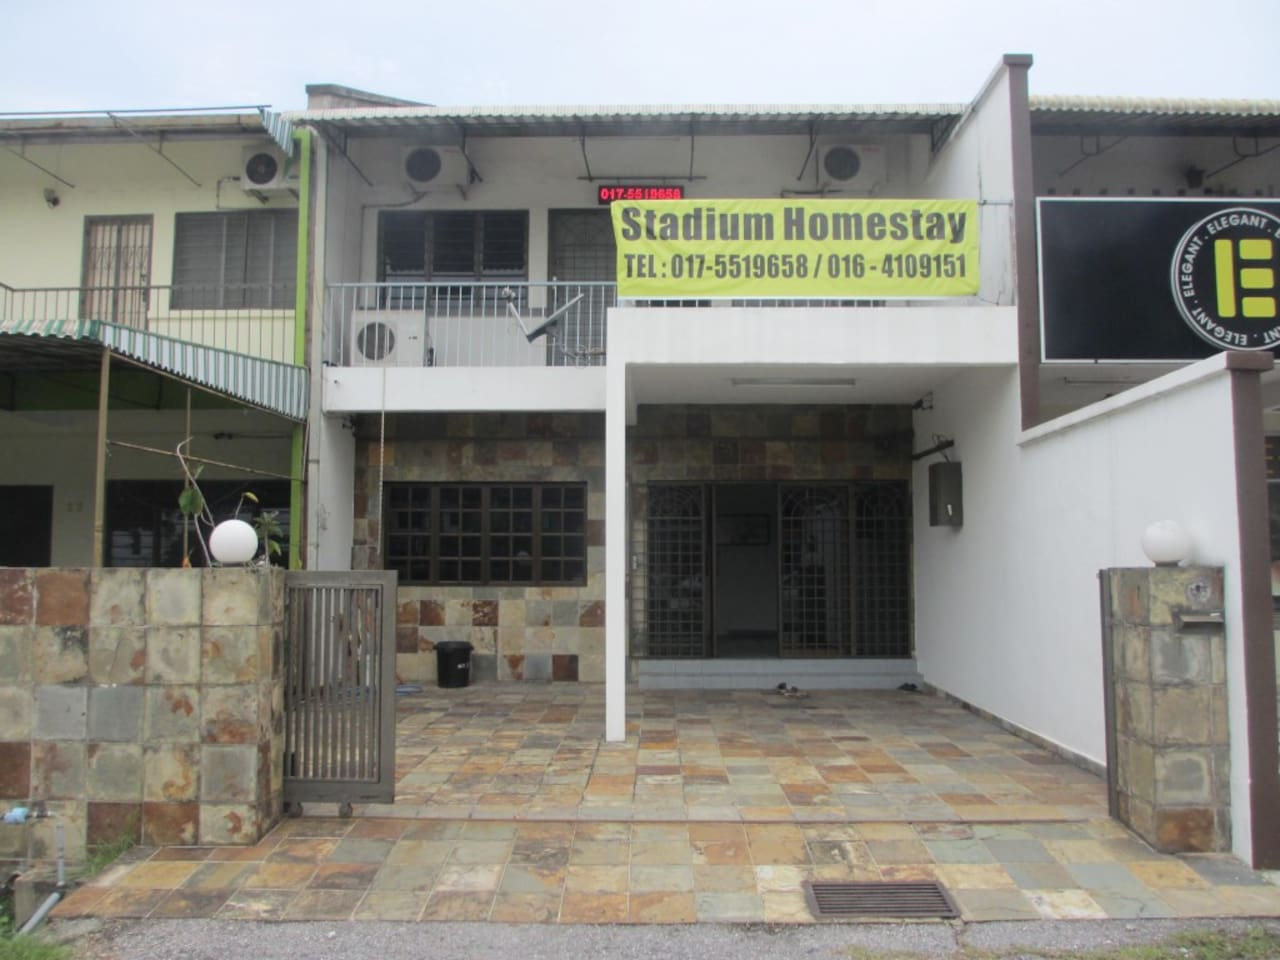 Clean, comfortable and reasonably priced homestay. We are right in the city!